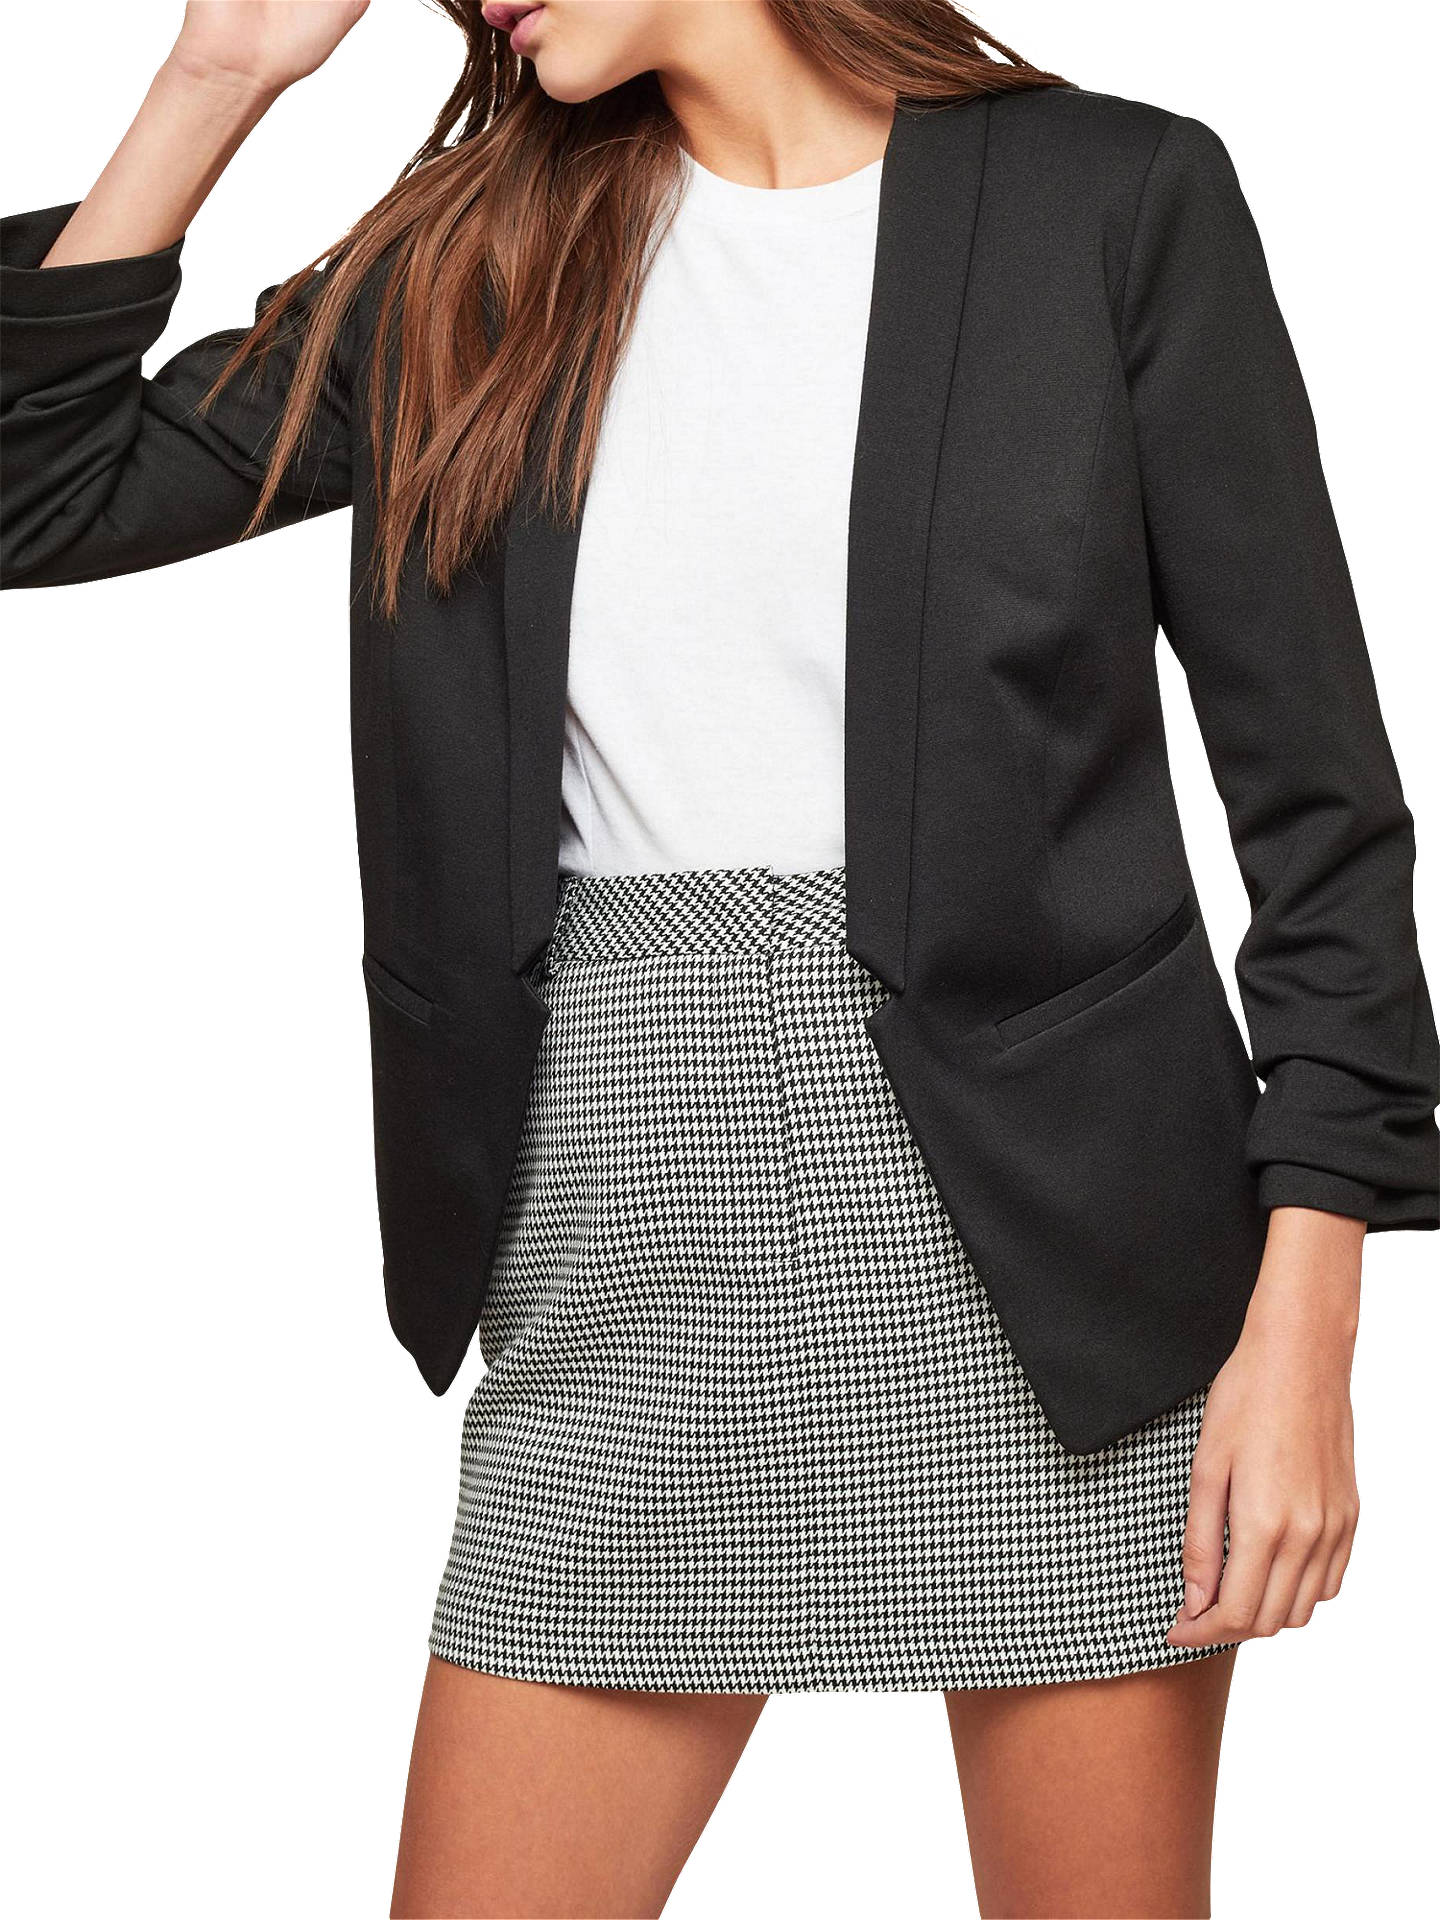 BuyMiss Selfridge Petite Ruched Sleeve Ponte Jacket, Black, 6 Online at johnlewis.com